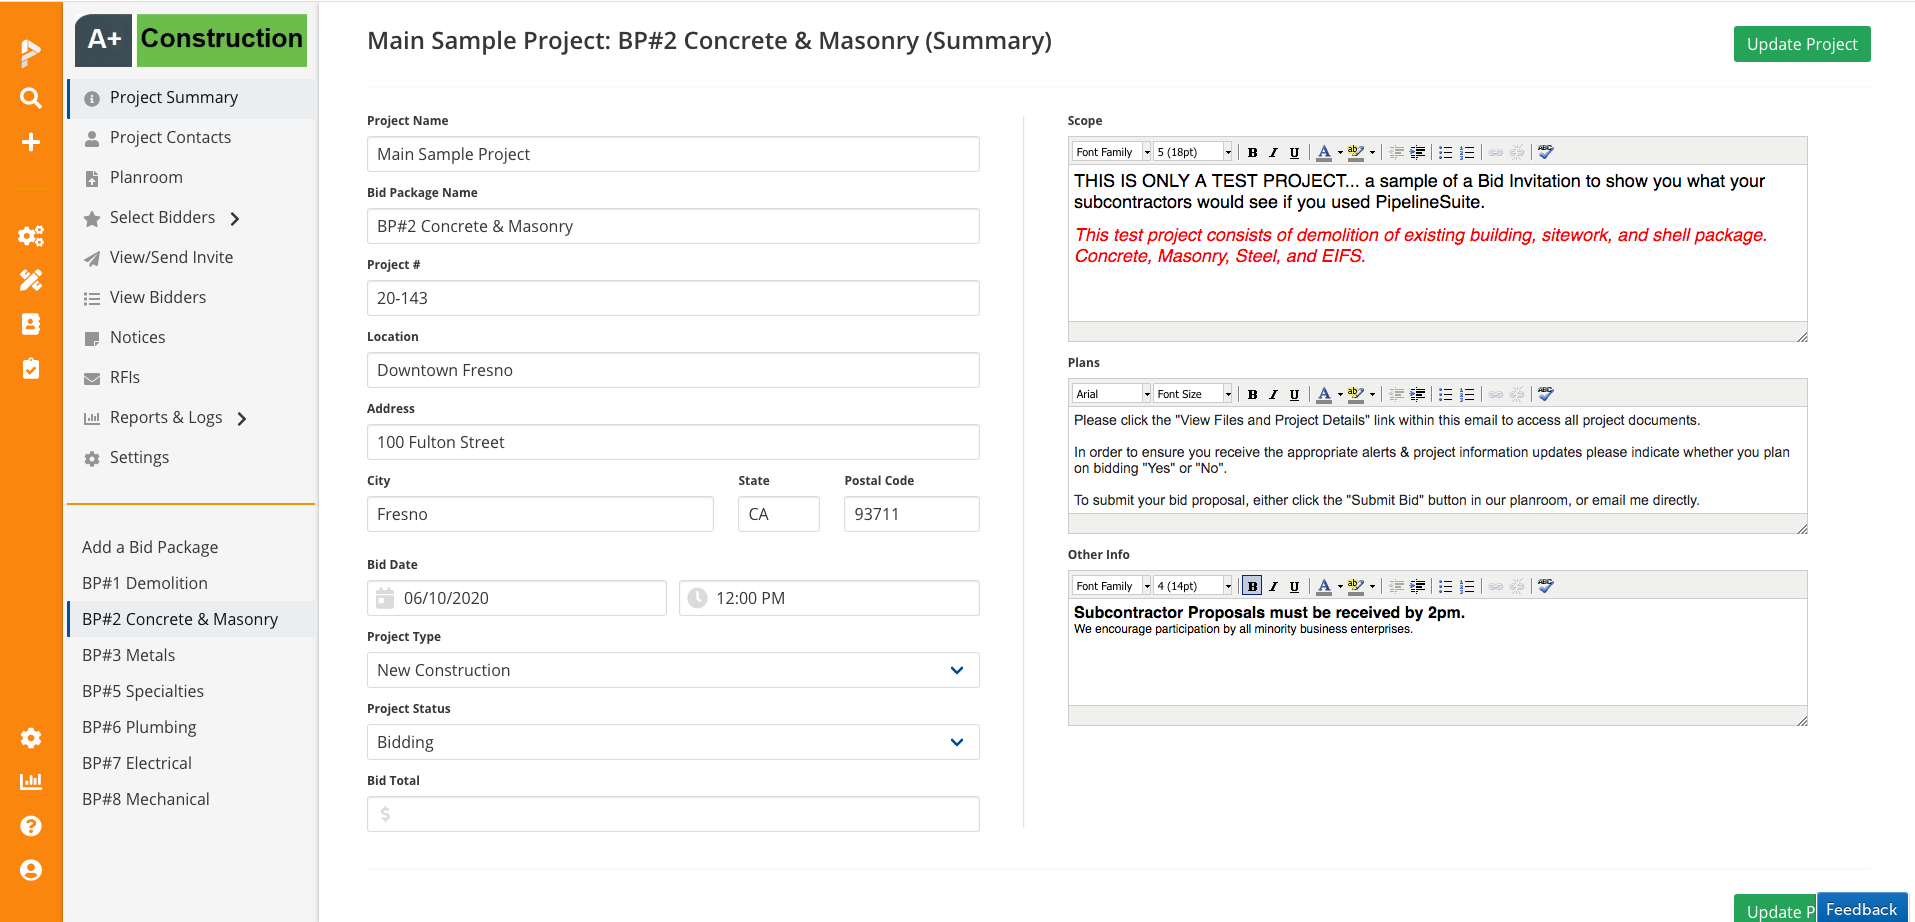 PipelineSuite Bid Management Software - Project Summary with Bid Packages